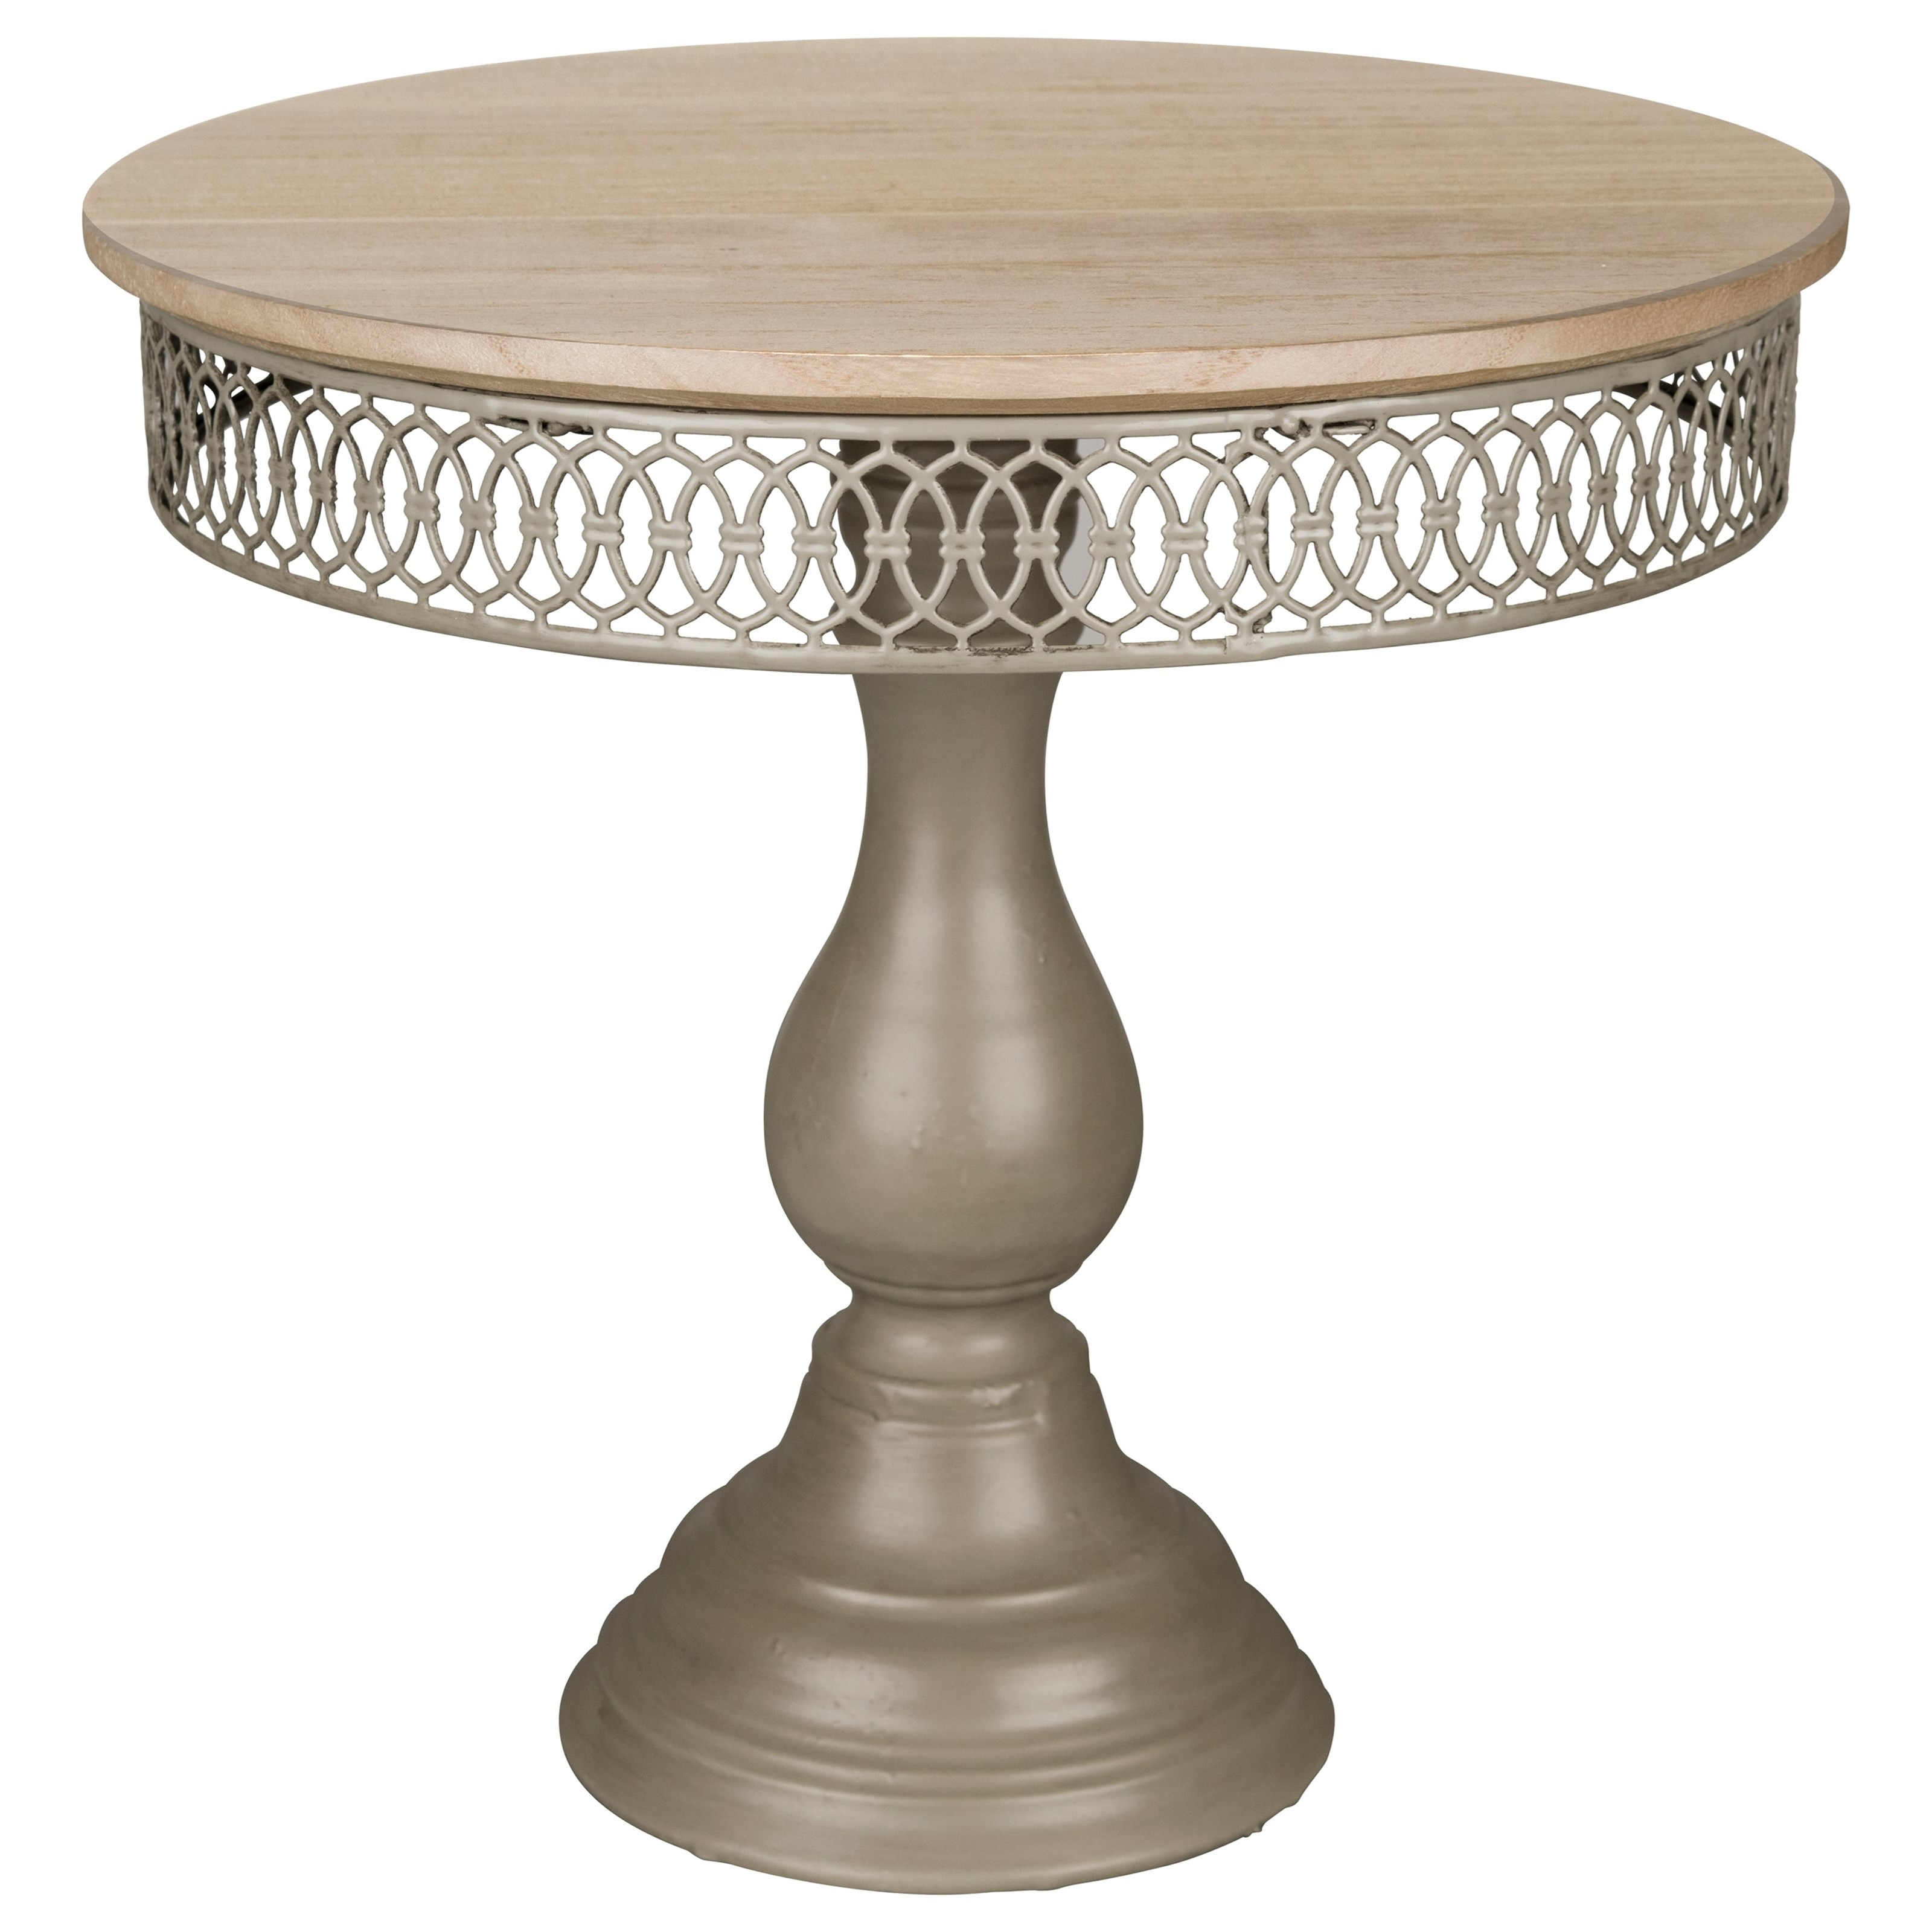 Magnolia Home by Joanna Gaines Accessories Filigree Dessert Pedestal Small - Item Number: 90900014